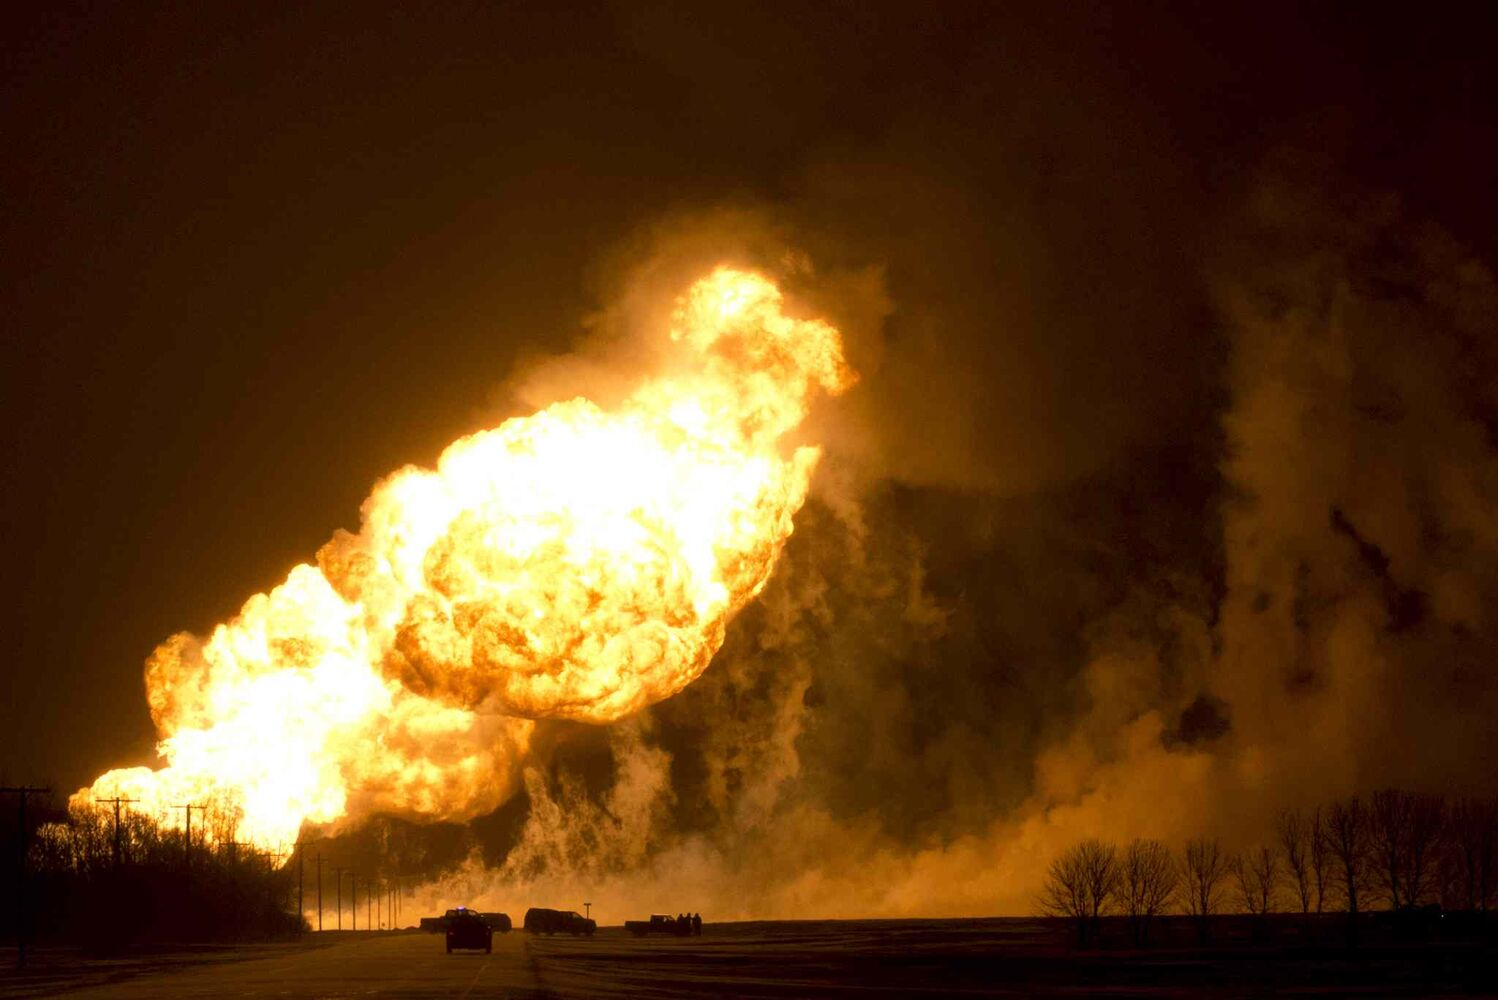 A TransCanada natural gas pipeline exploded between Otterburne and Highway 59 in southeastern Manitoba around 1 a.m. Saturday, Jan. 25. (Jordan McRae)